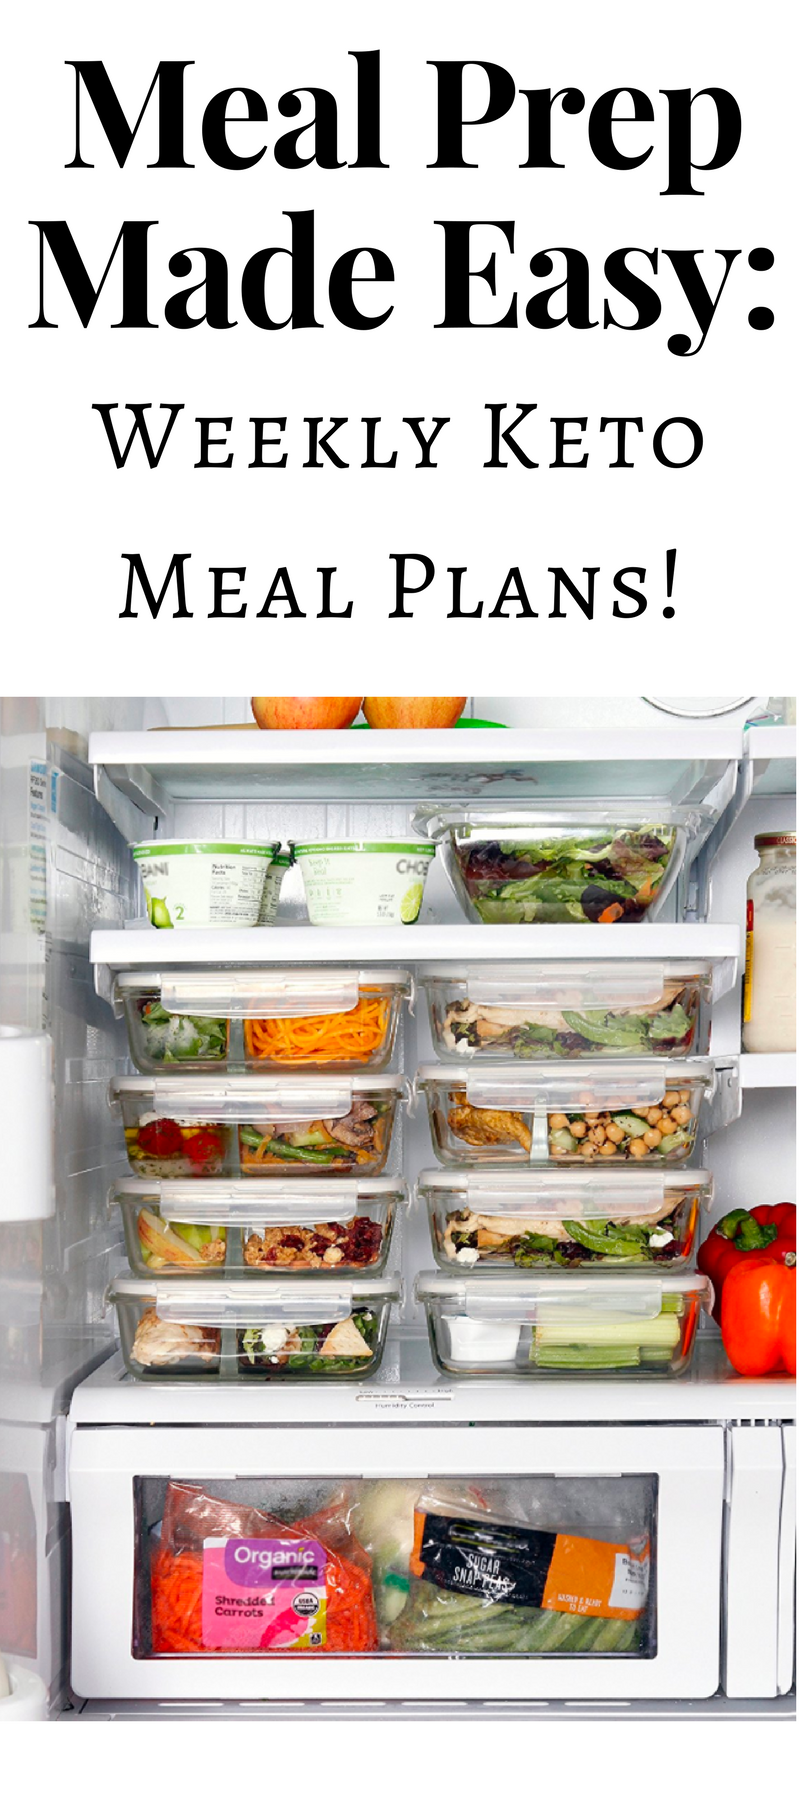 Meal prep made easy weekly low carb keto meal plans for Plan snack cuisine